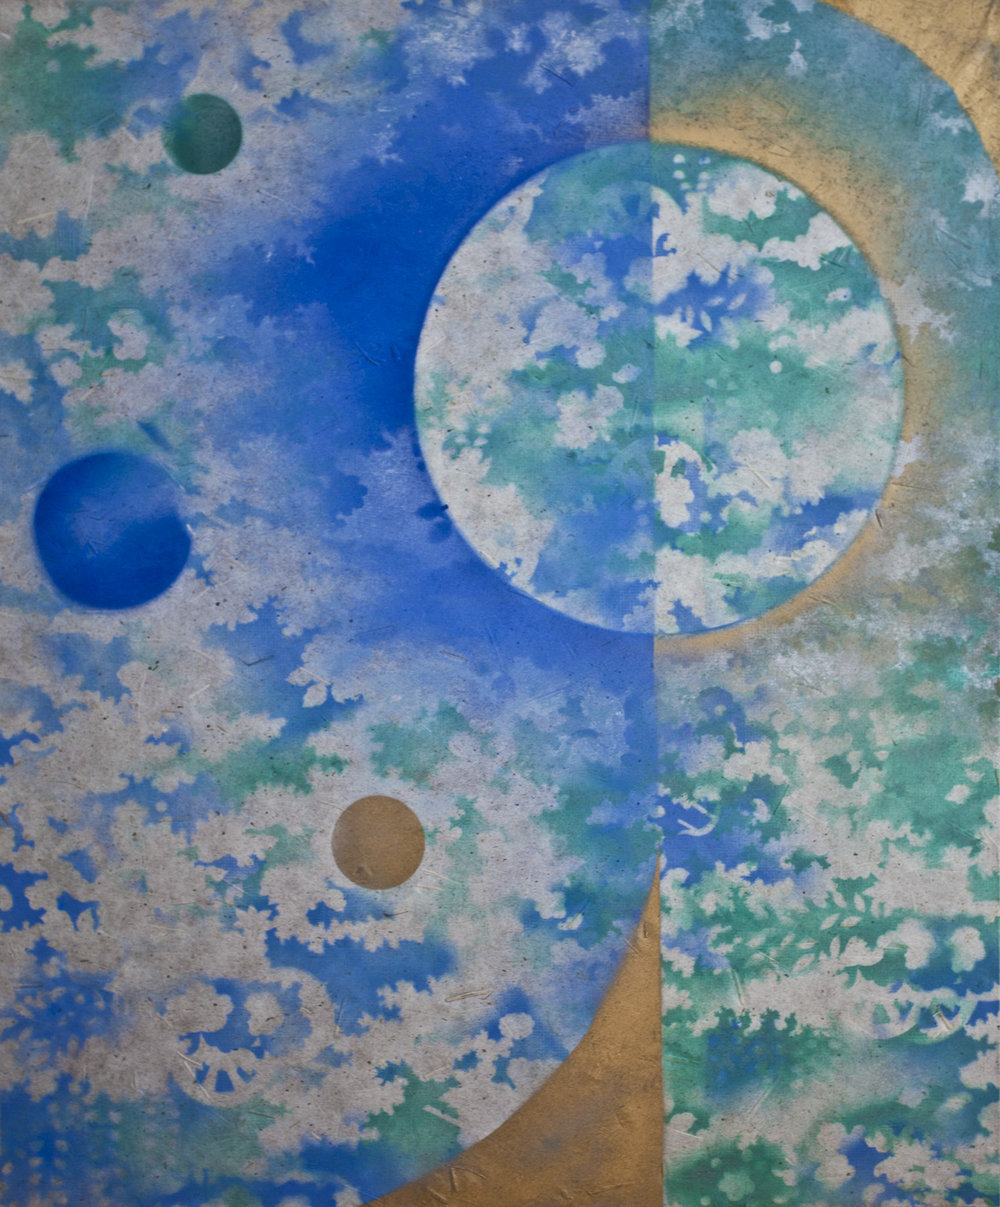 Water Planet,  Oil Based Ink on Mulberry Paper Board Mount, 35.25 x 30.5 x 2.5 Framed